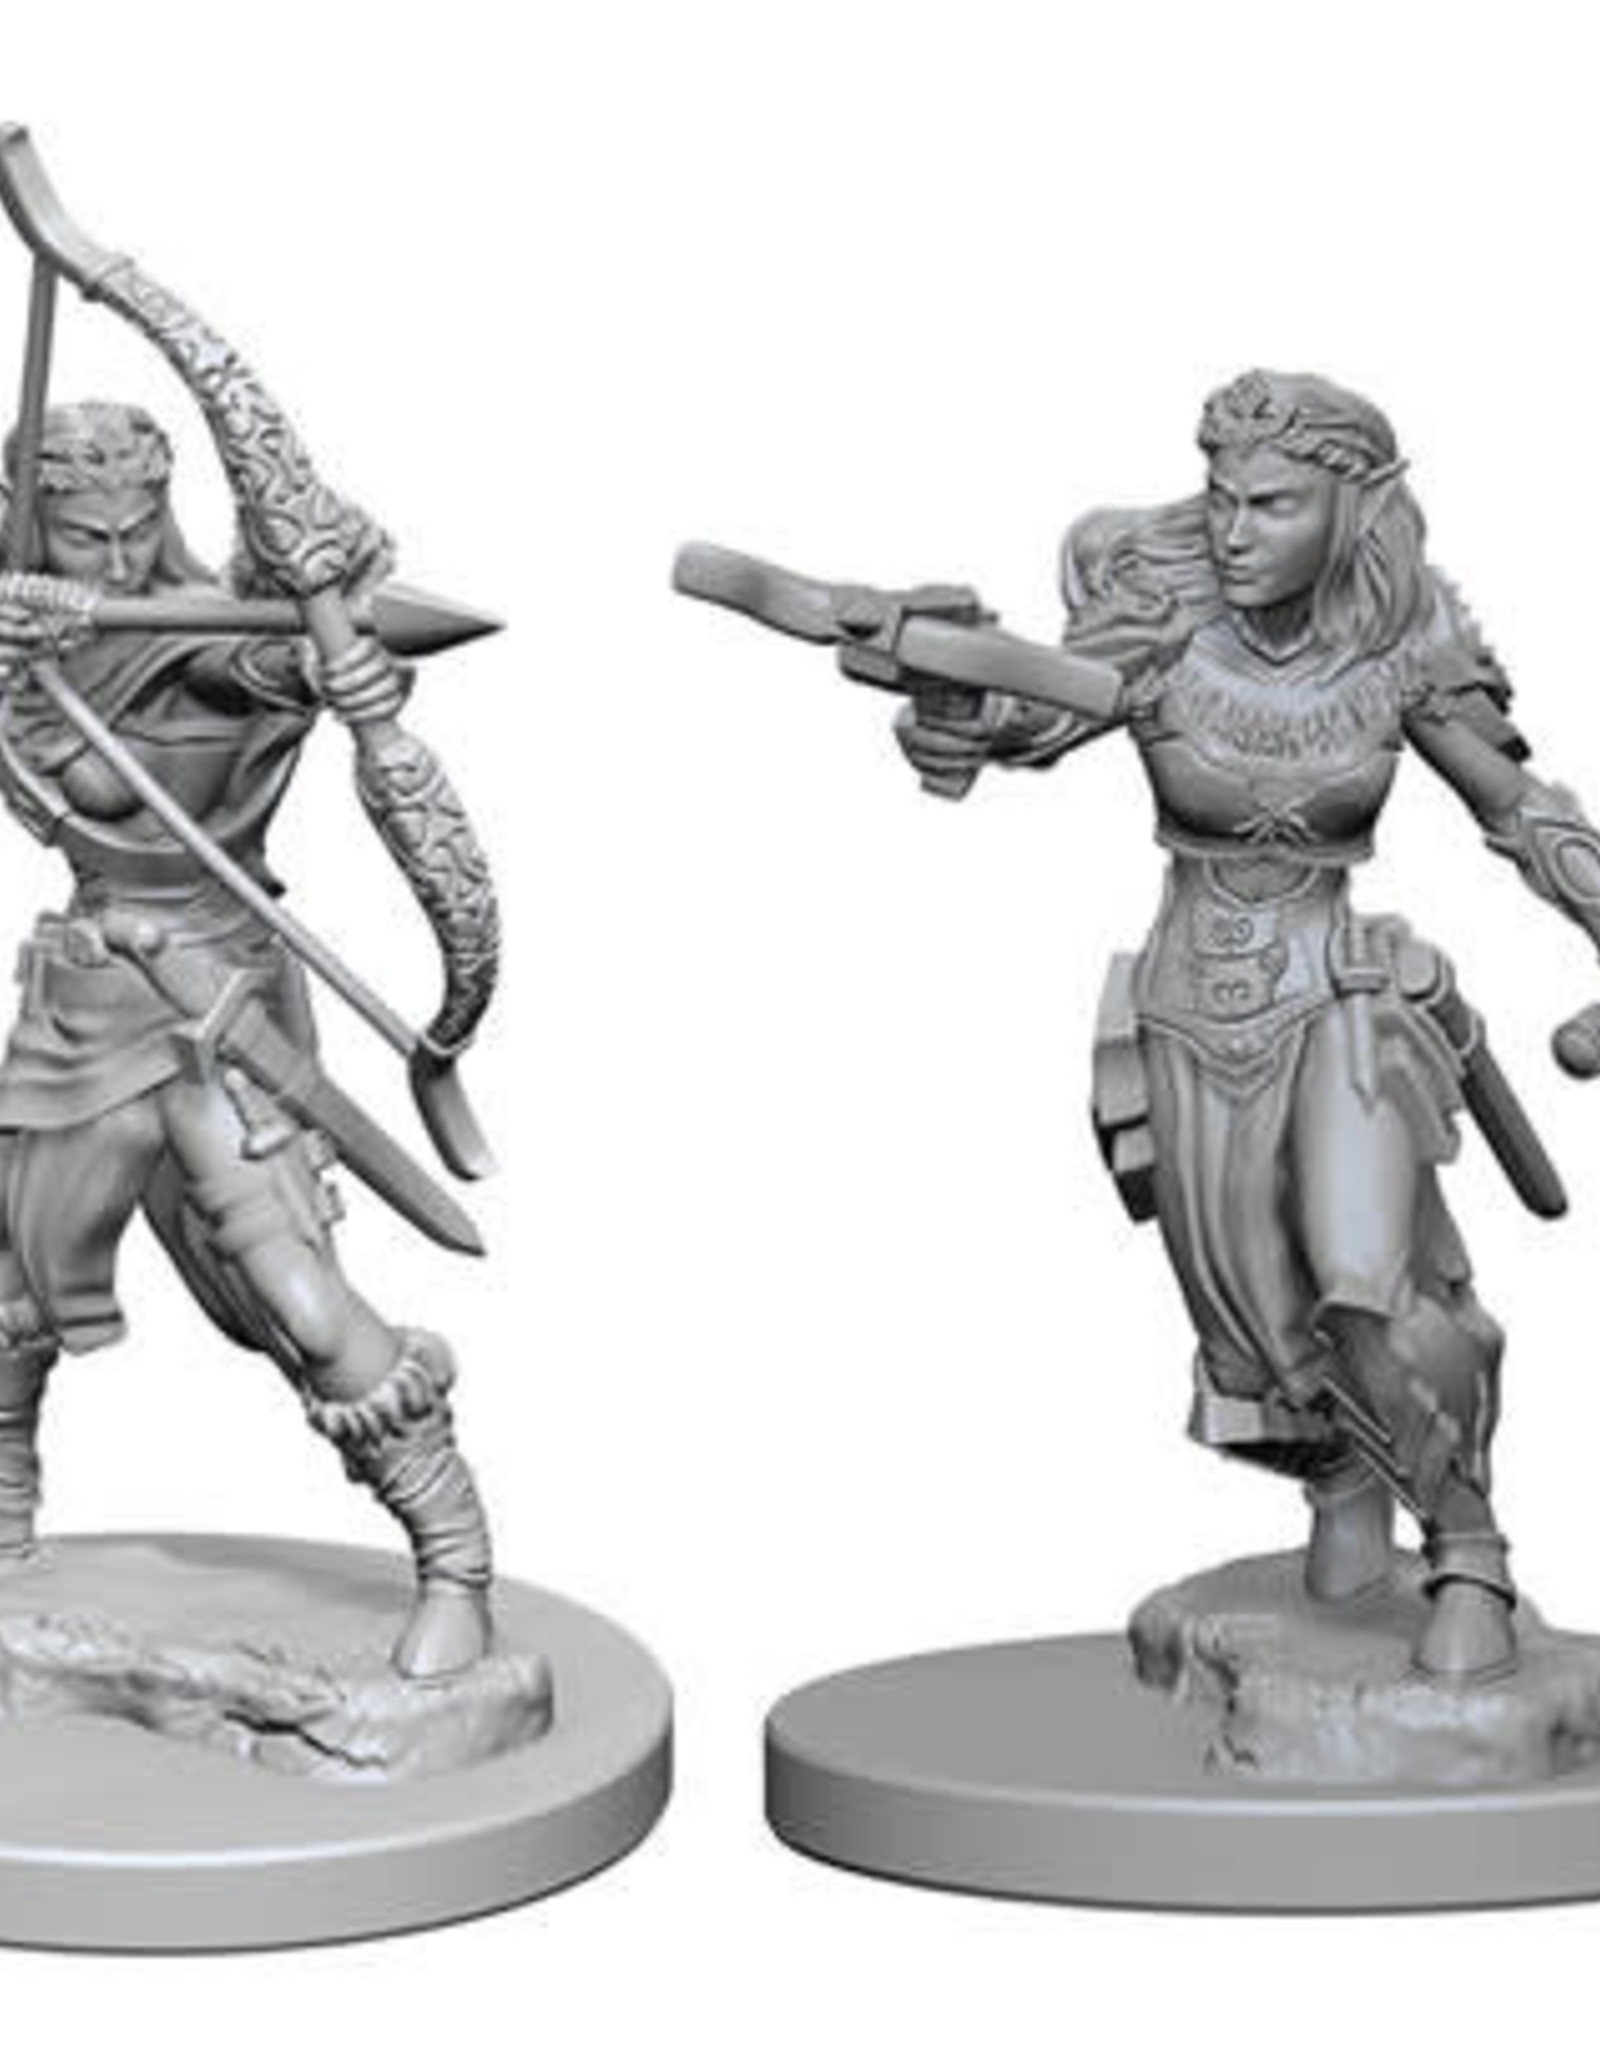 WizKids D&D Nolzur Elf Ranger (She/Her/They/Them)